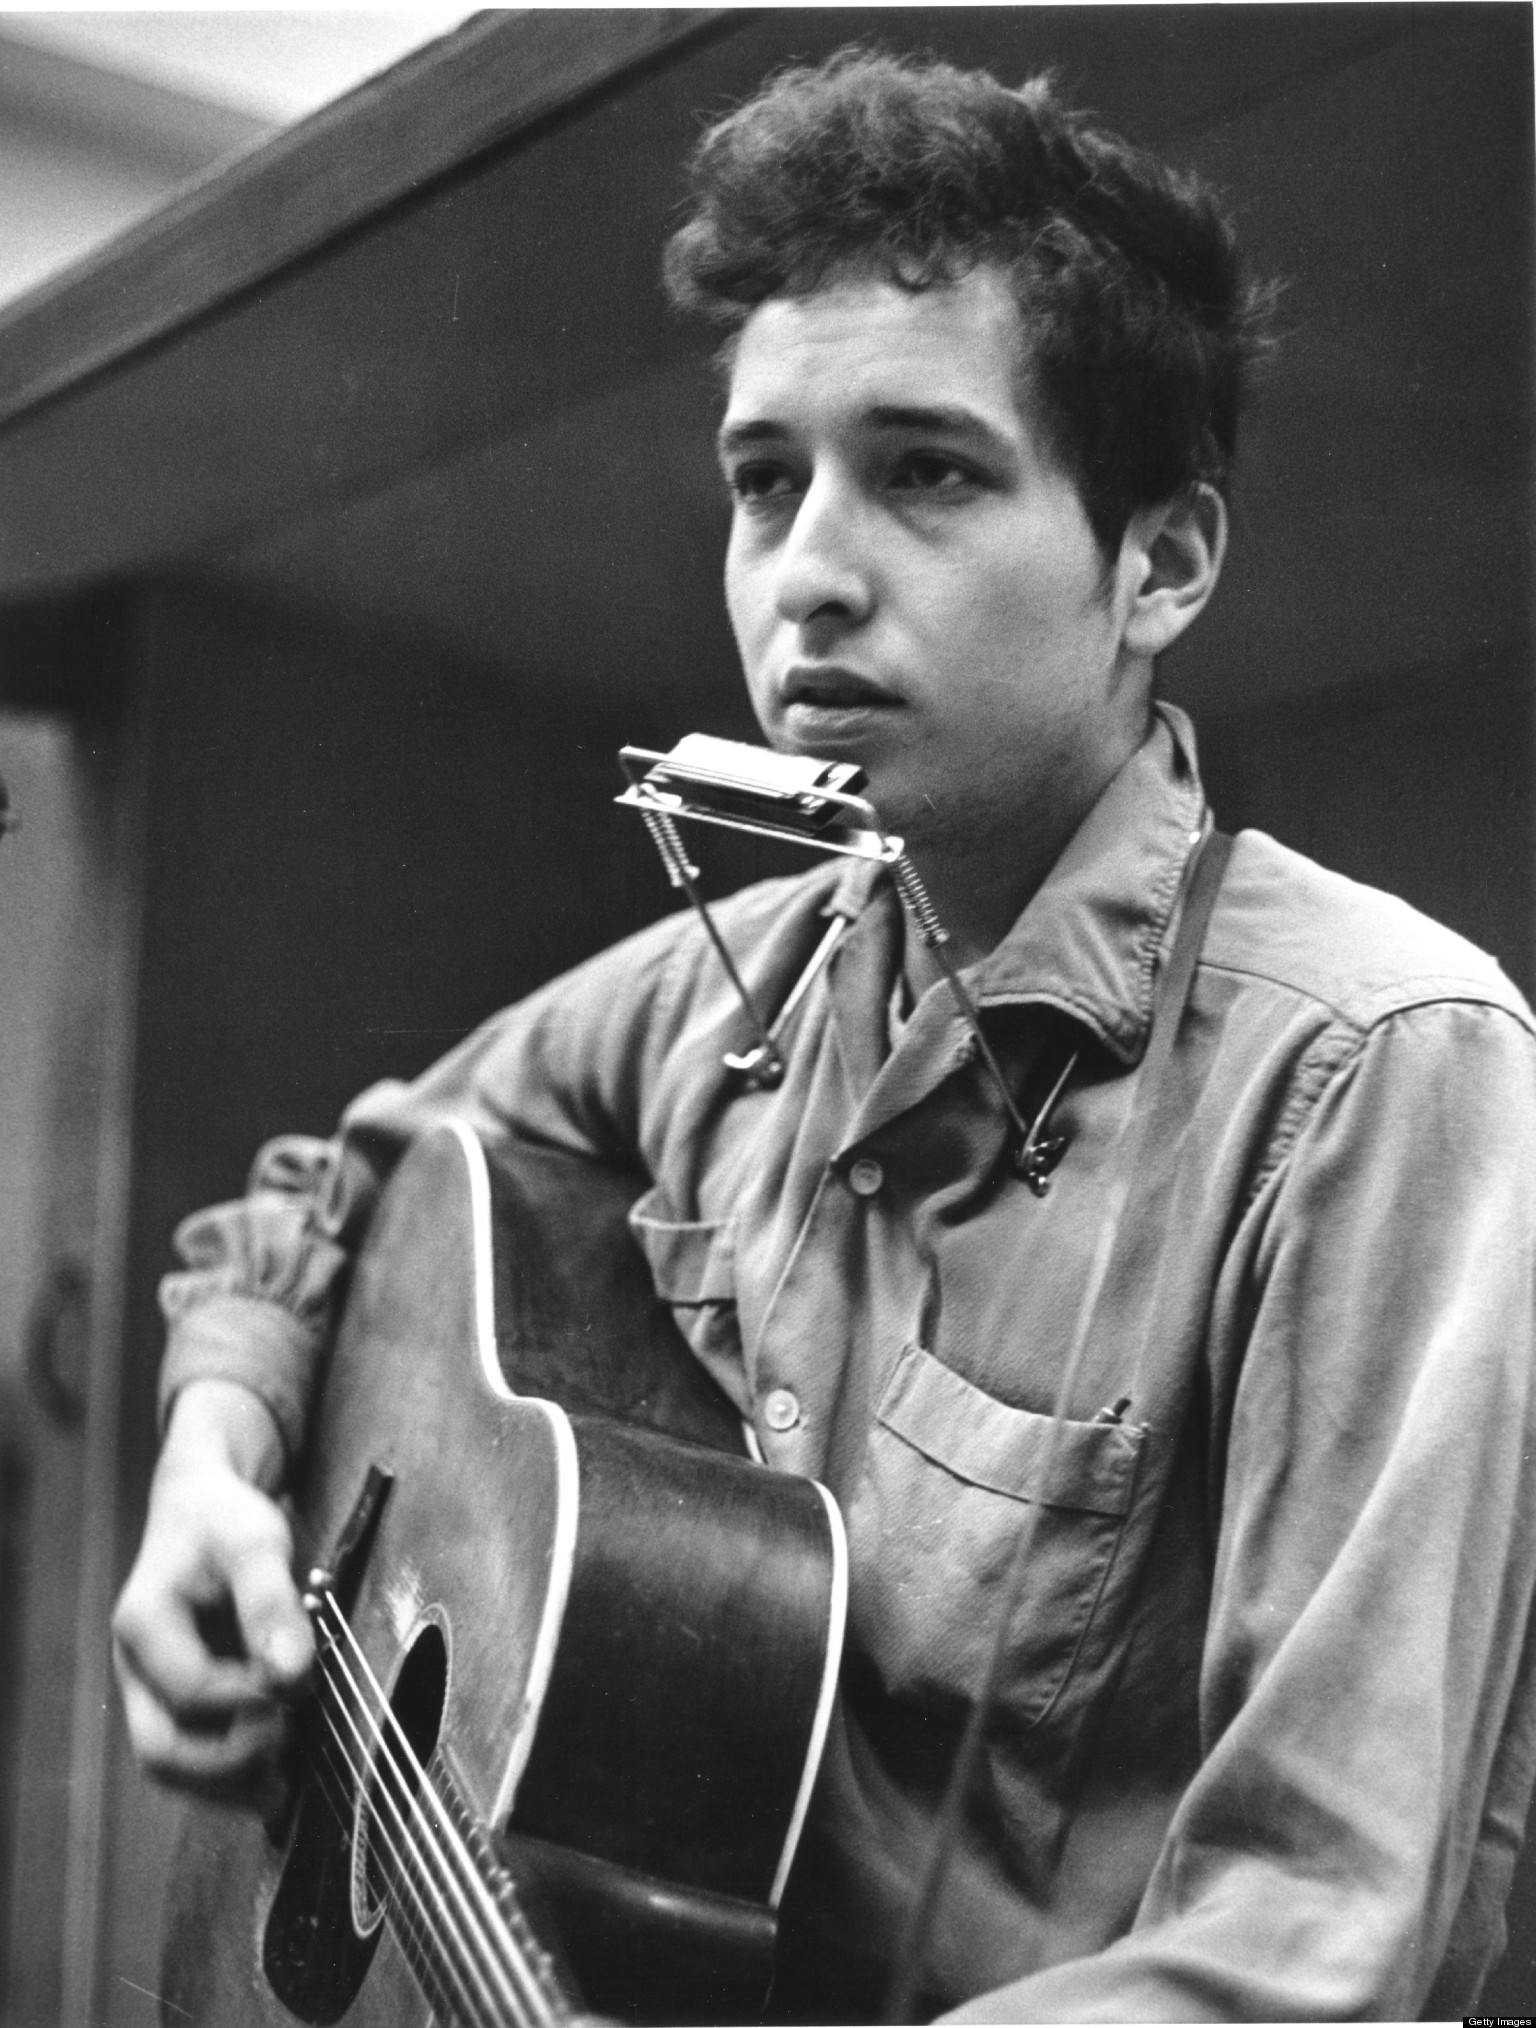 o-BOB-DYLAN-FIRST-NEW-YORK-CITY-PERFORMANCE-facebook.jpg